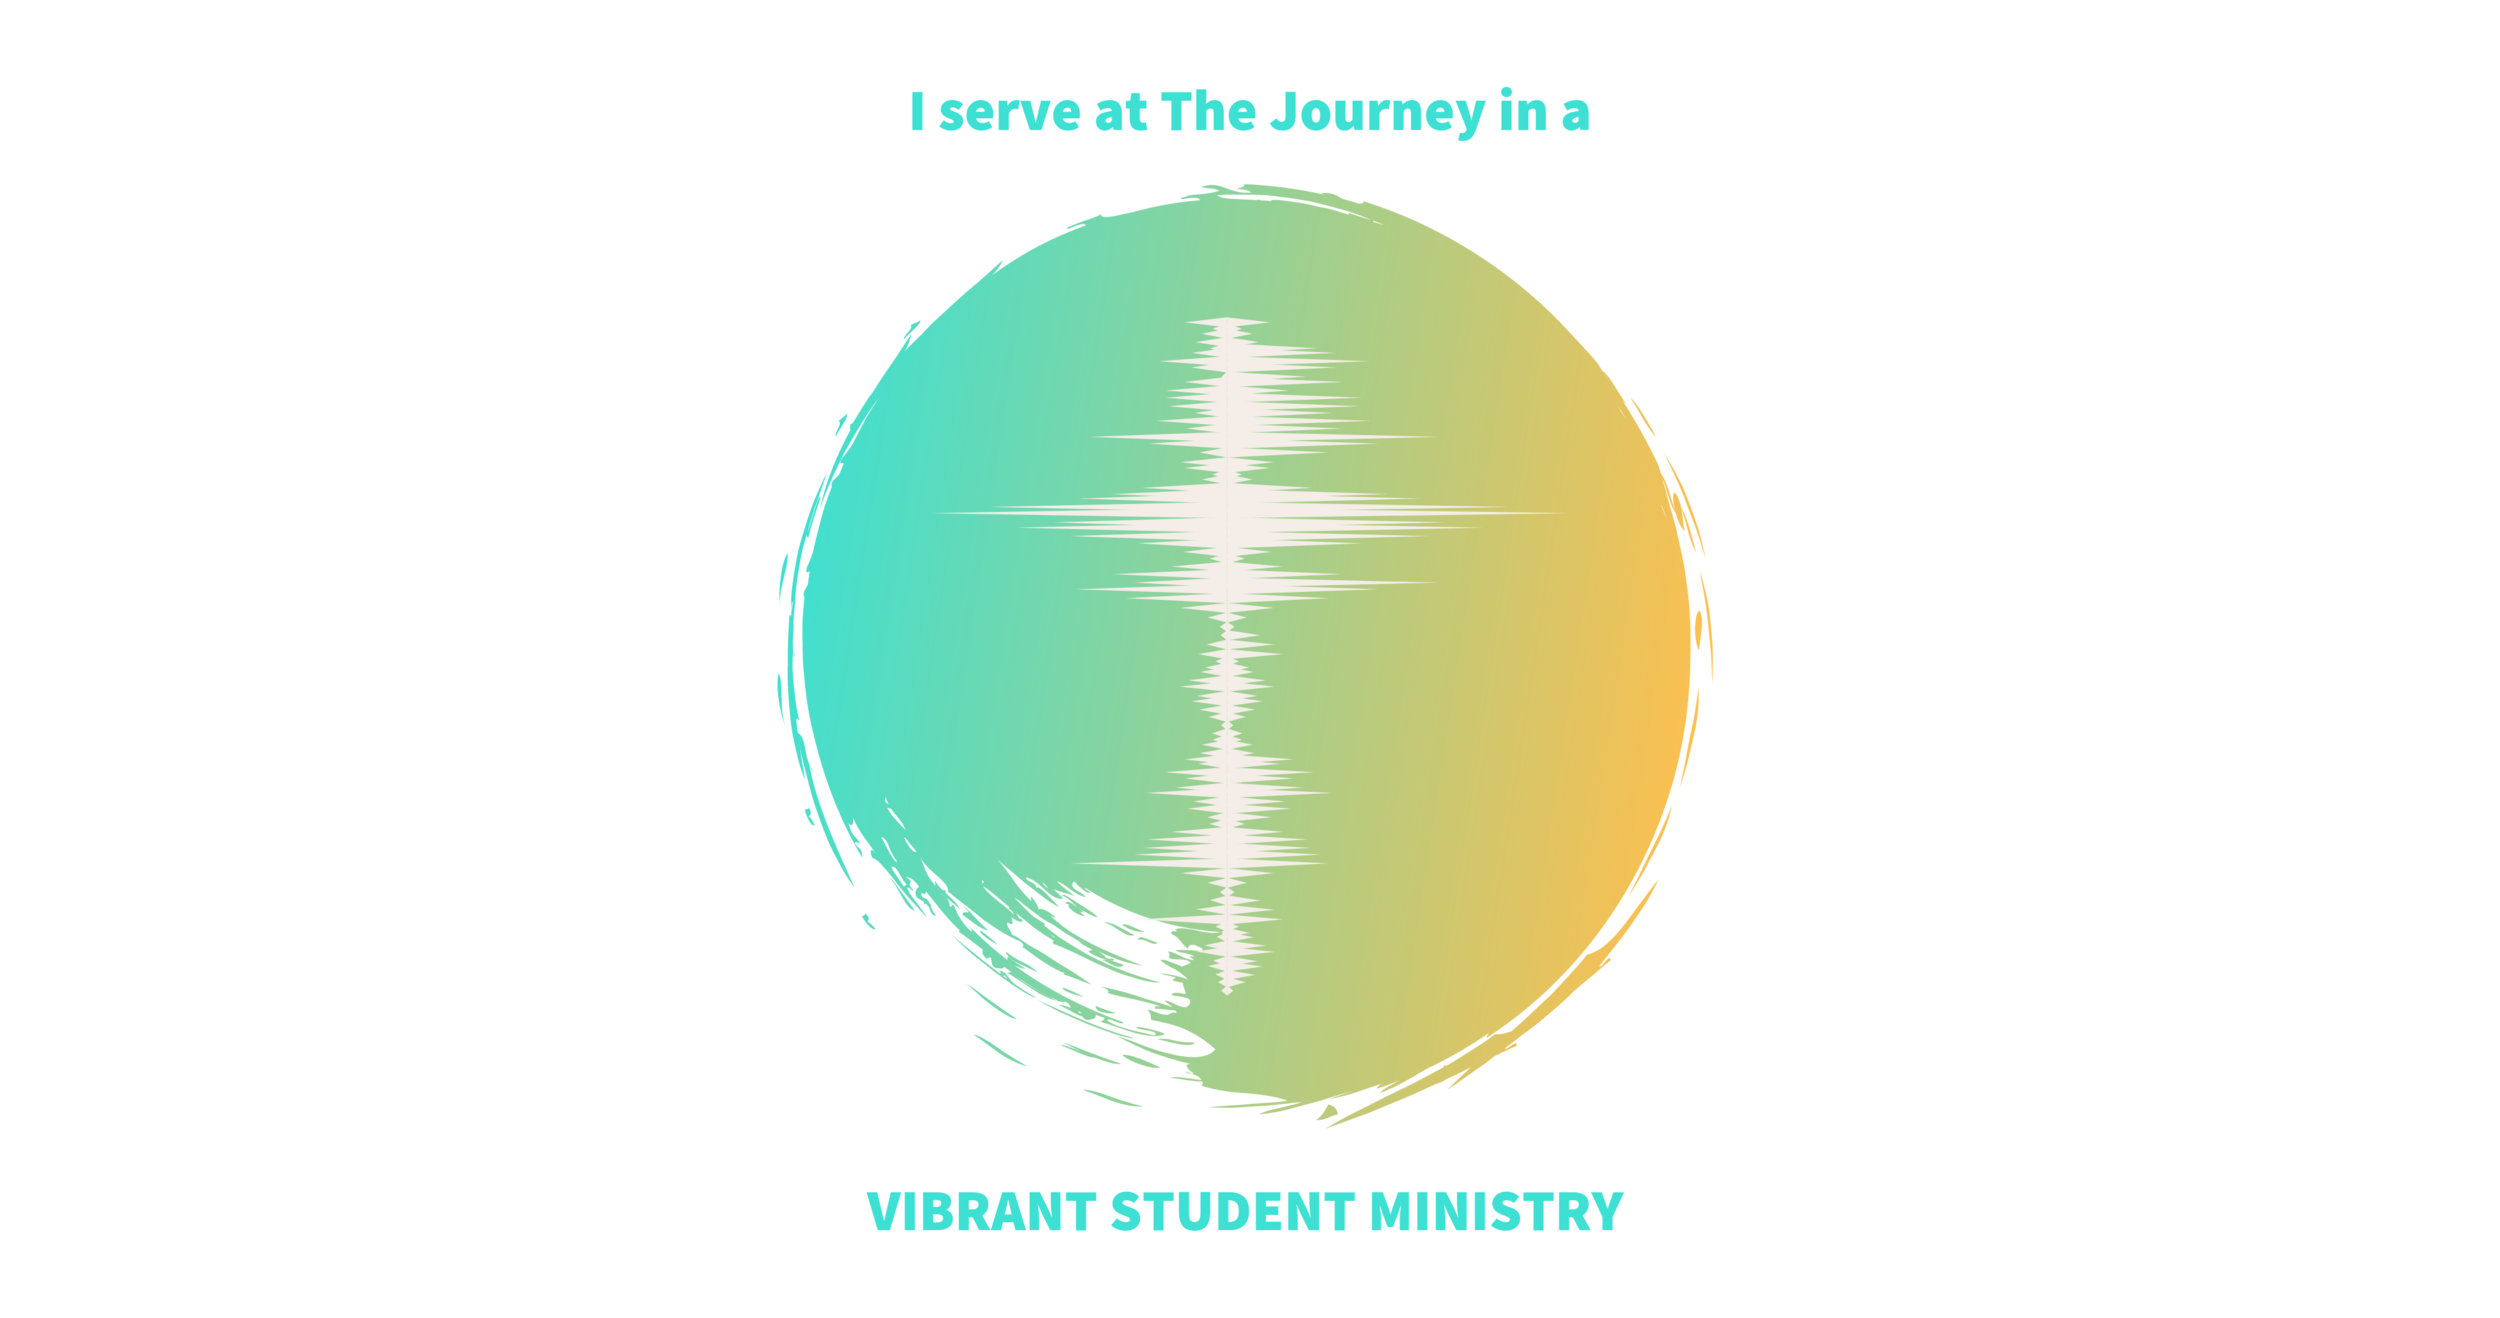 VIBRANT STUDENT MINISTRY (2).png